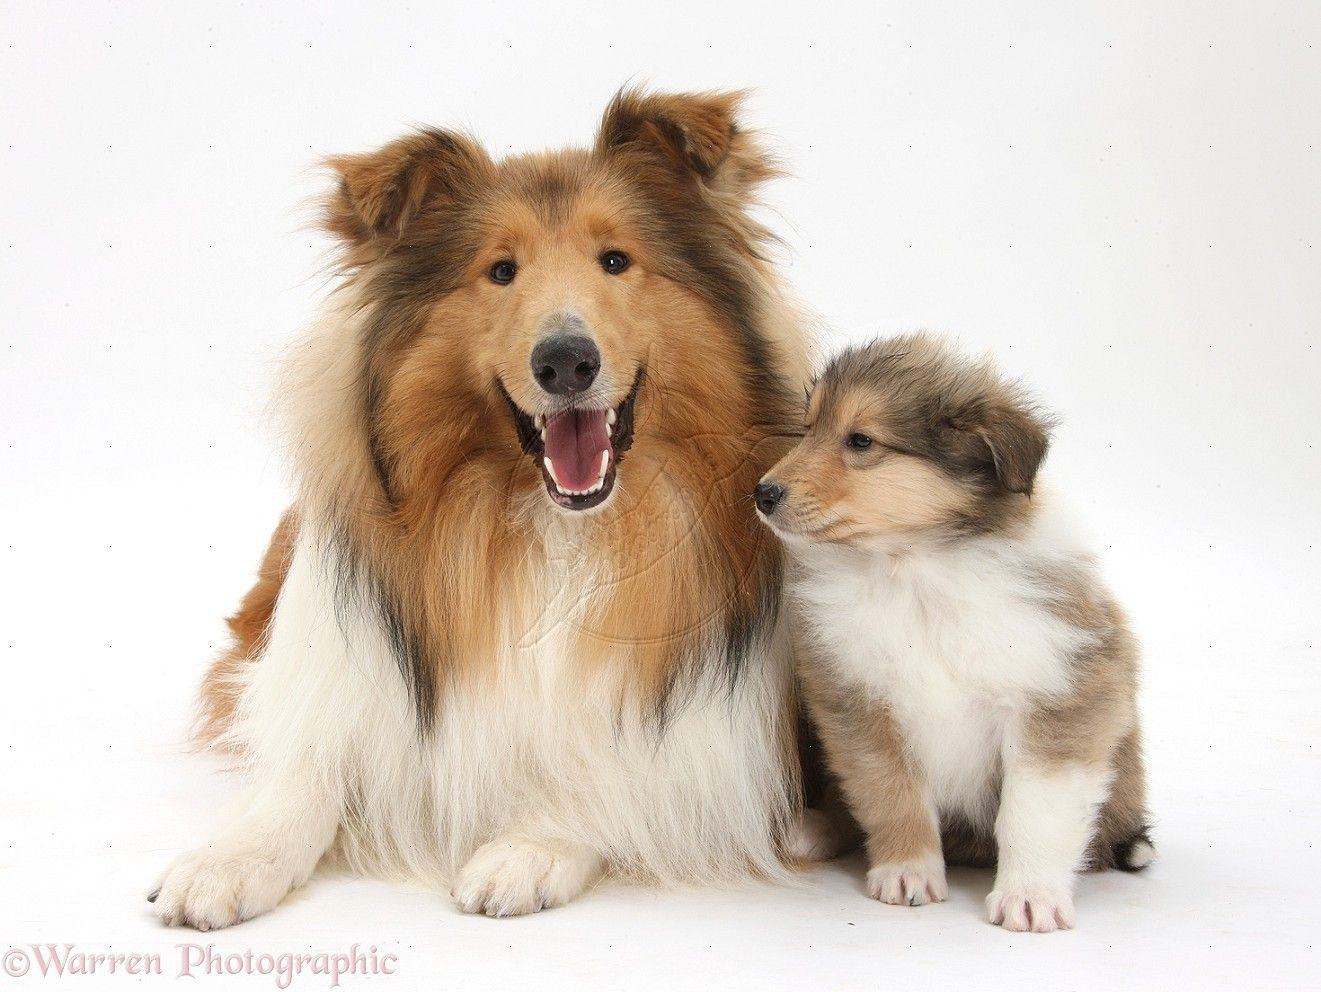 Dog Photos Wp38066 Sable Rough Collie Dog And Puppy 7 Weeks